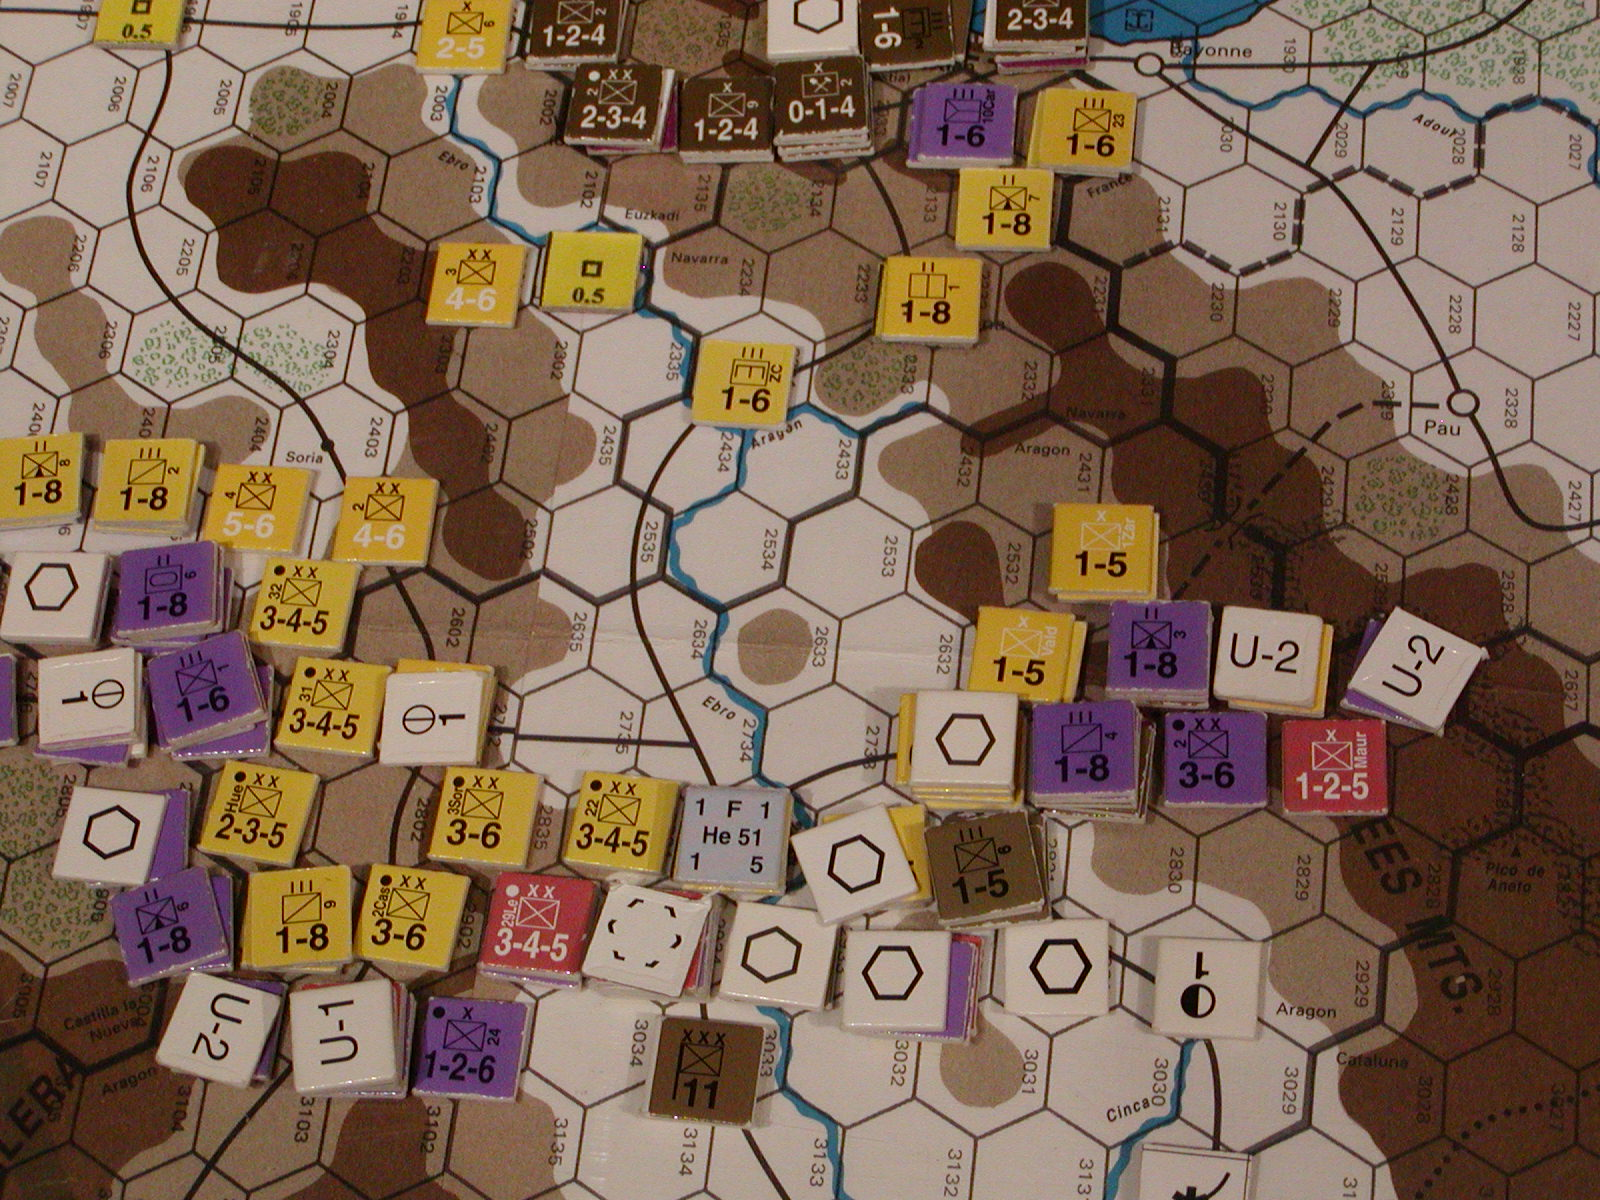 FWtBT No 4, MAR I 37: The Republican right flank pushes on though the Pyrenean foothills.